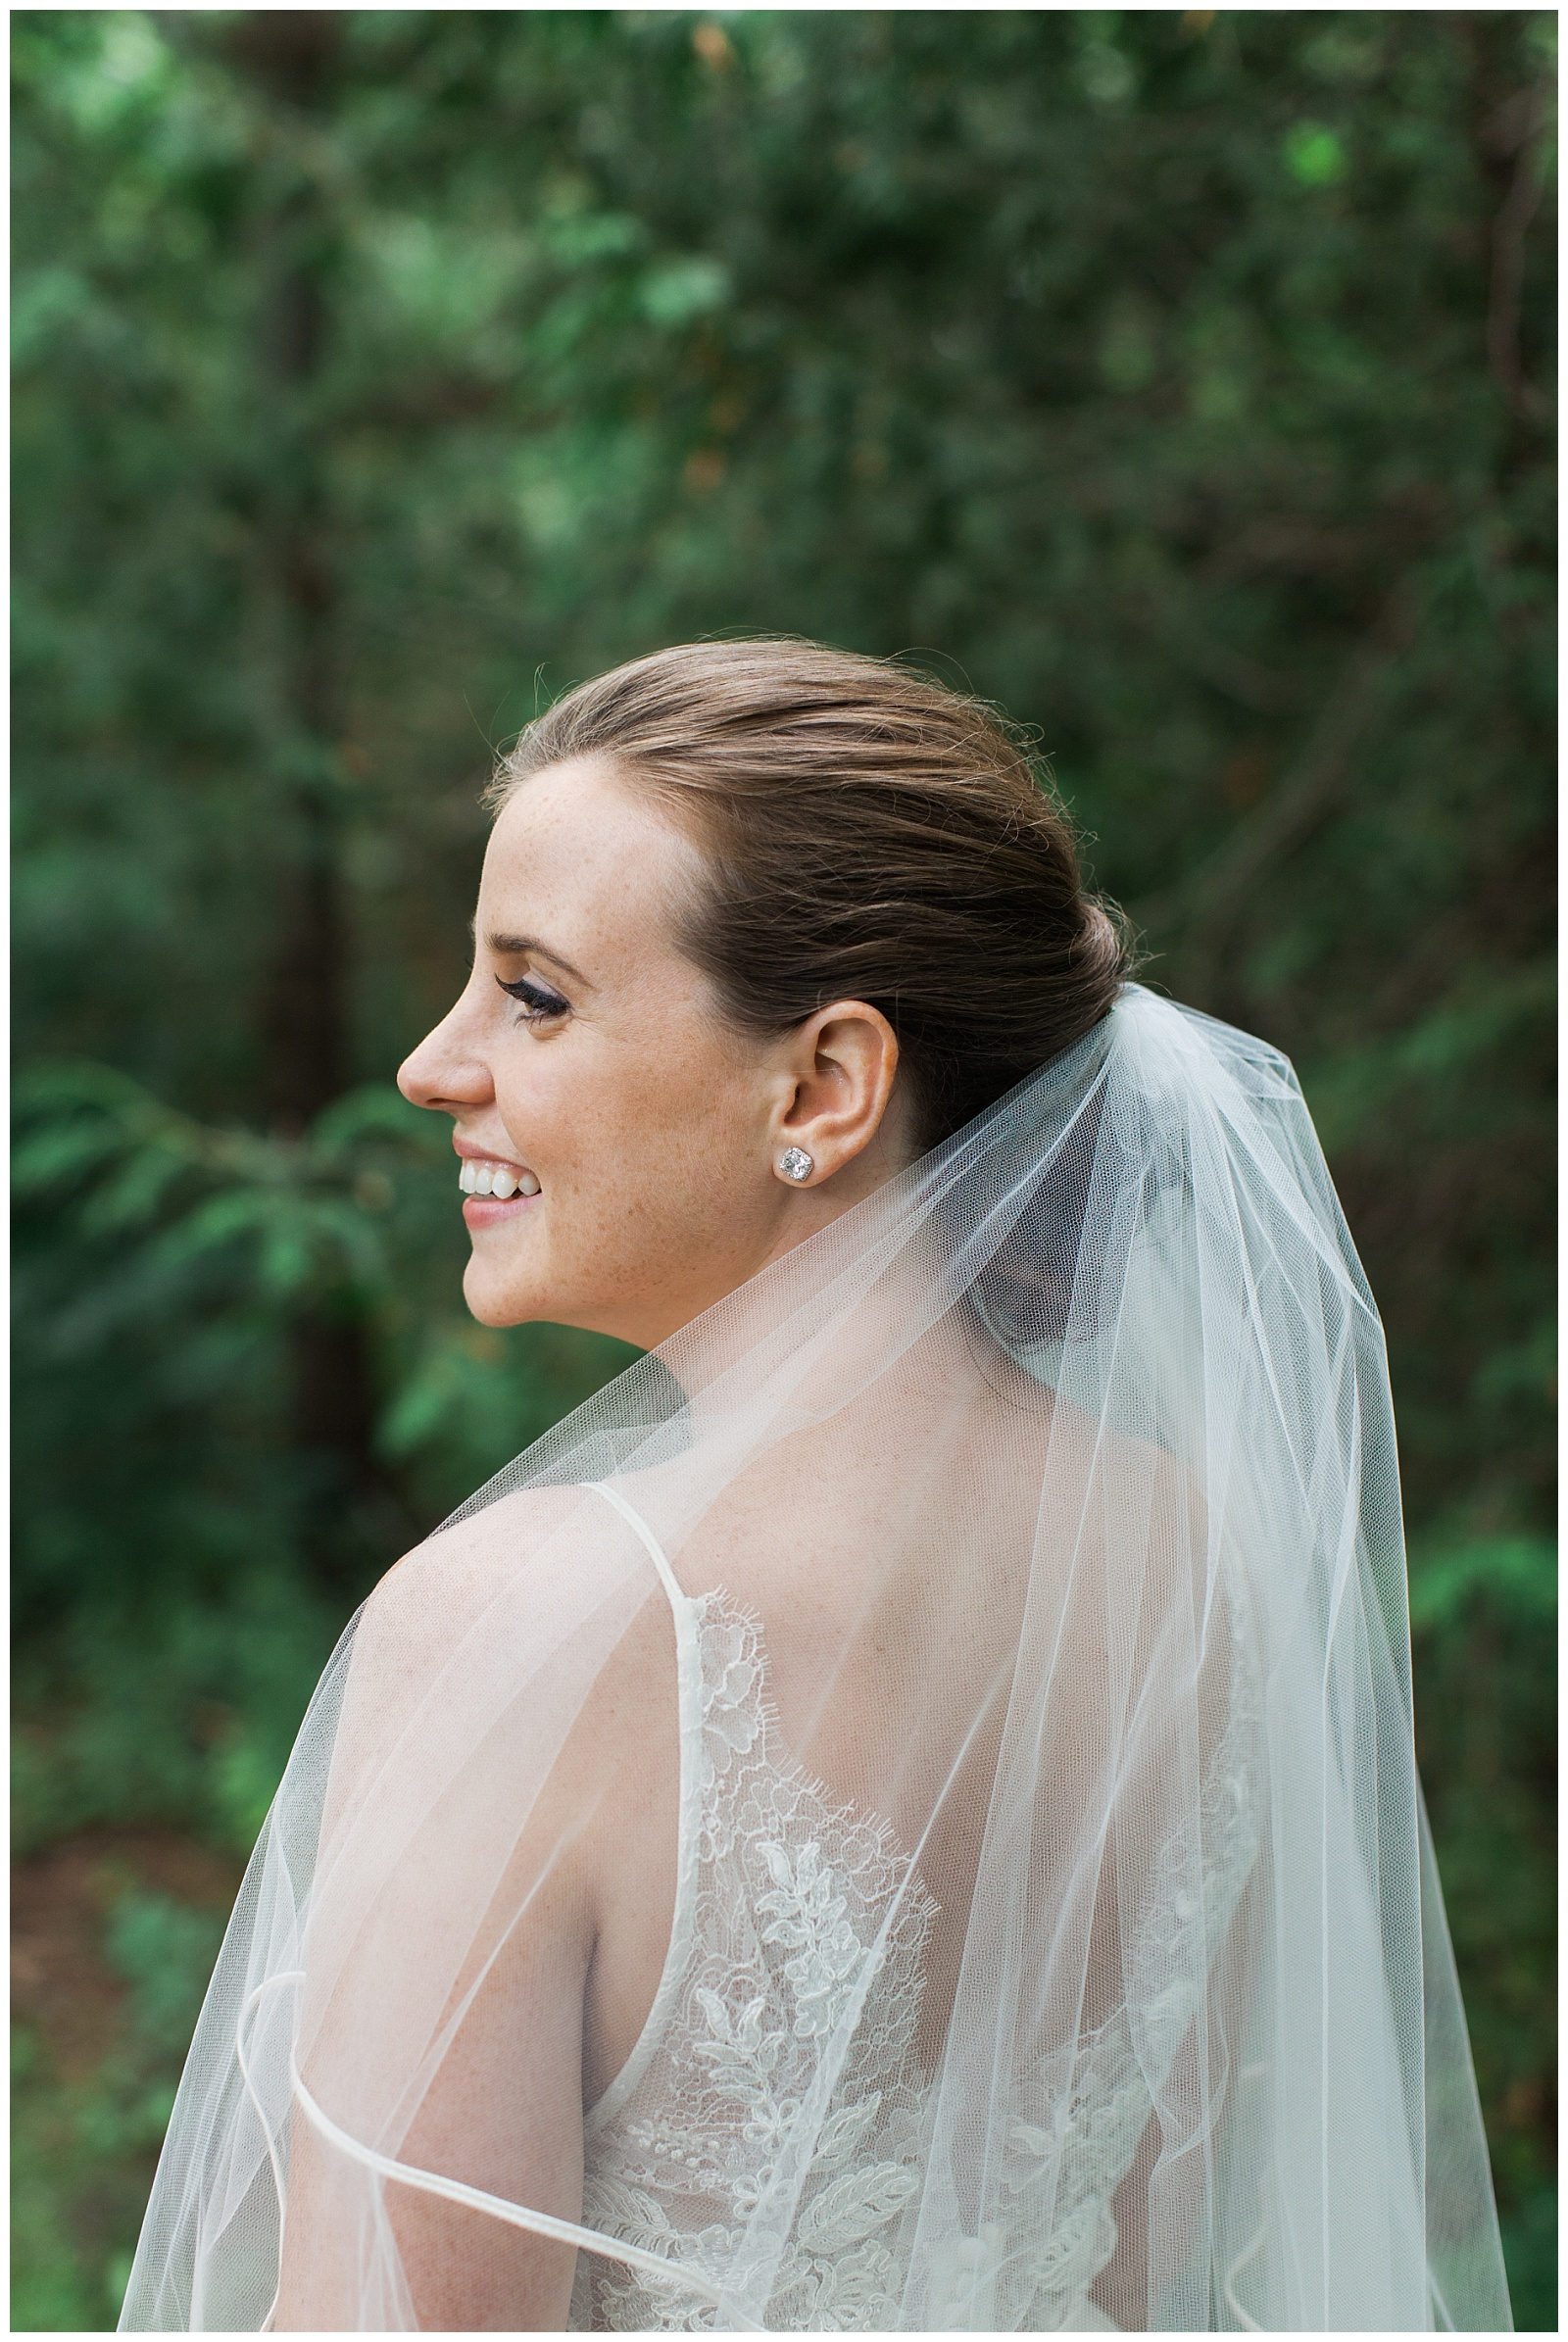 Bride smiling in veil with greenery in background at Guelph Ontario Wedding | Ontario Wedding Photographer | Toronto Wedding Photographer | 3photography